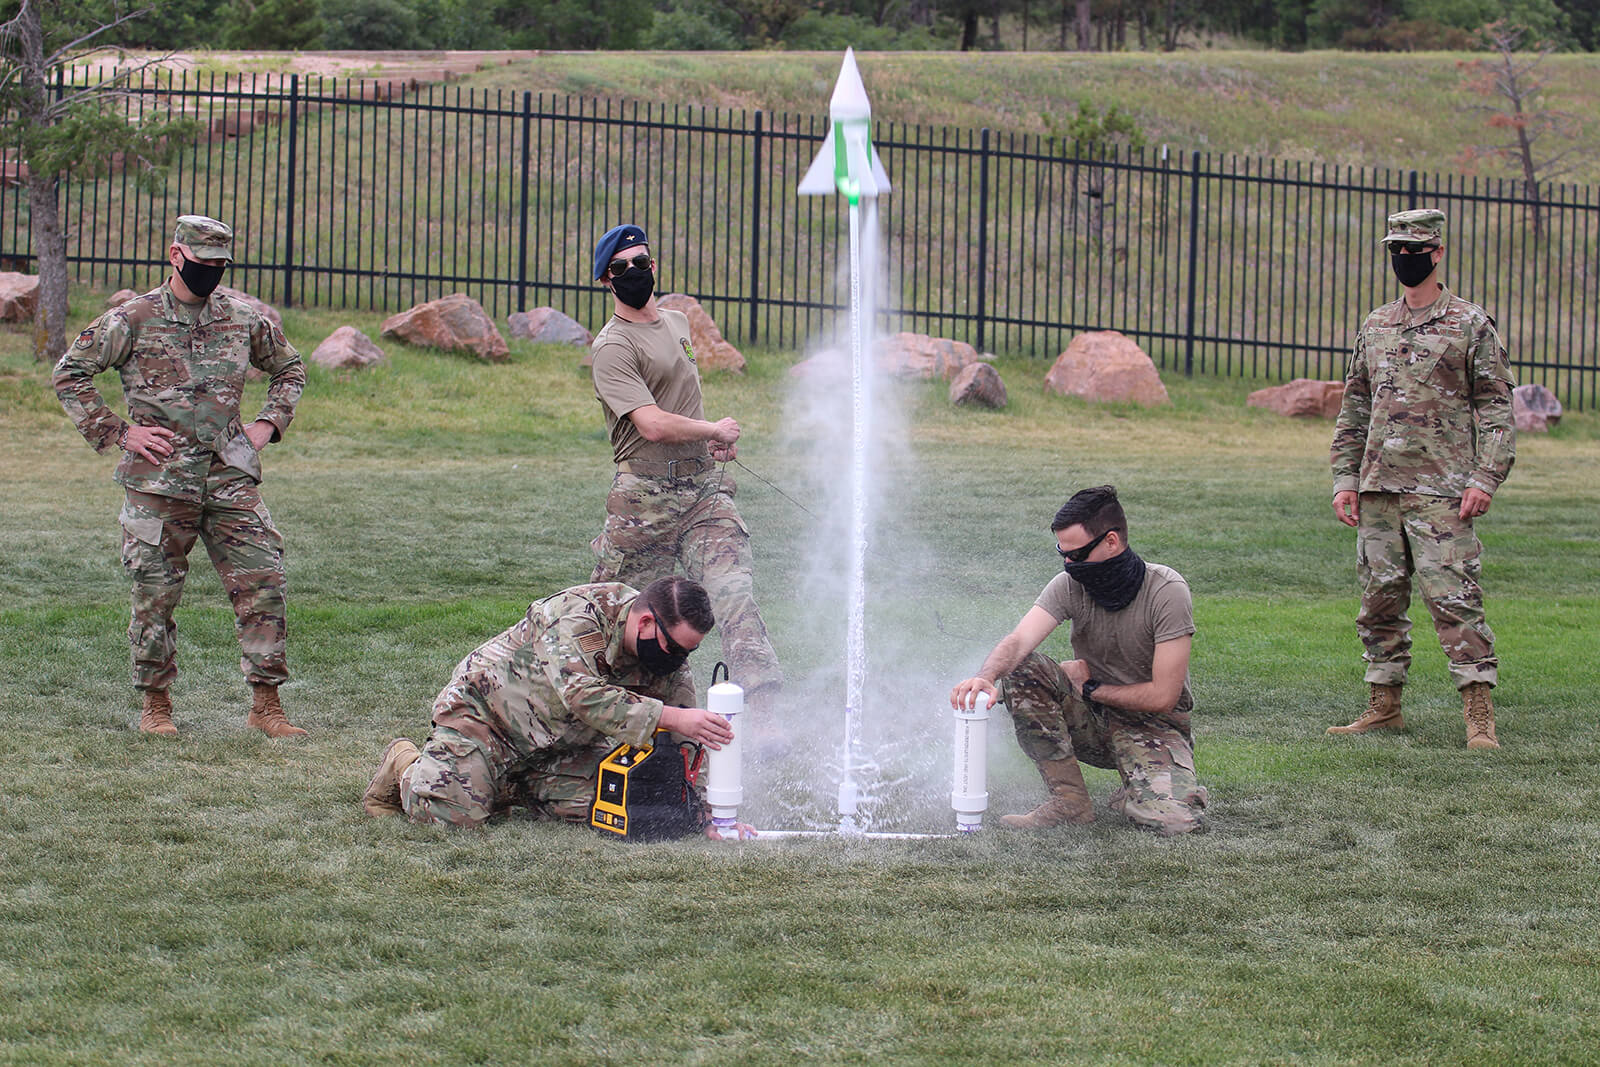 Cadets launching small rocket